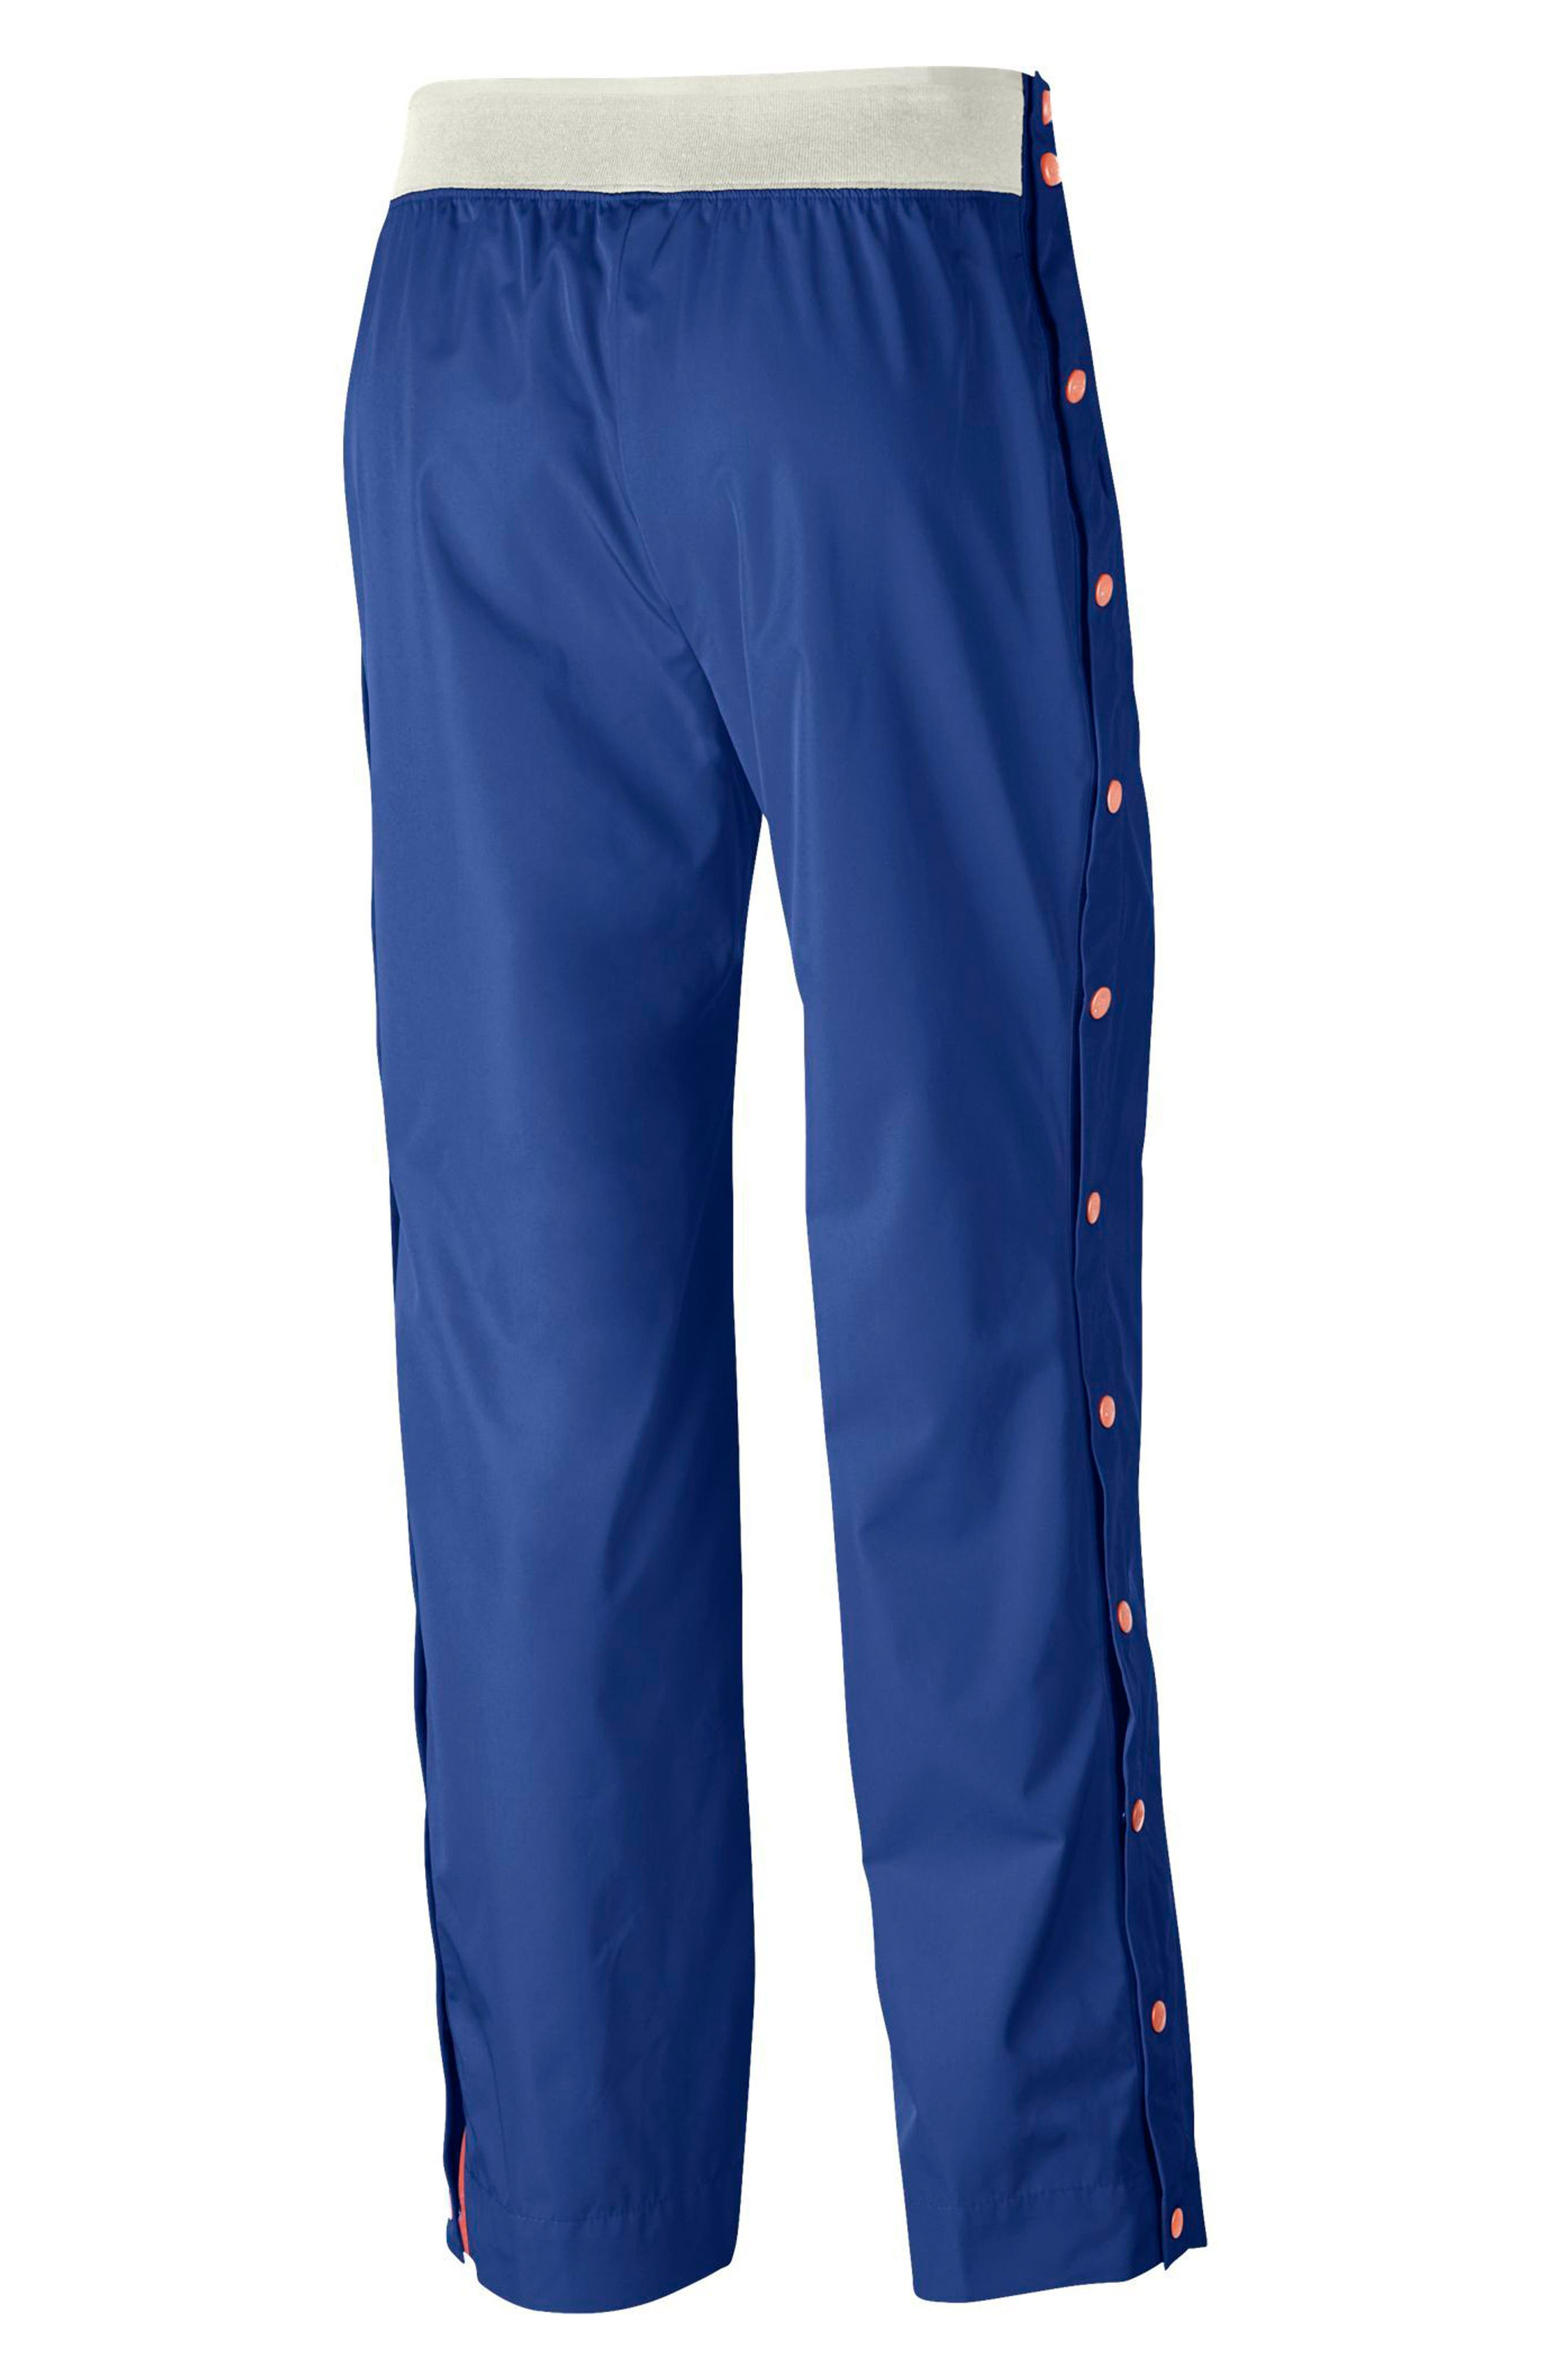 Sportswear Women's Side Snap Pants,                             Alternate thumbnail 2, color,                             Game Royal/ Bleached Coral